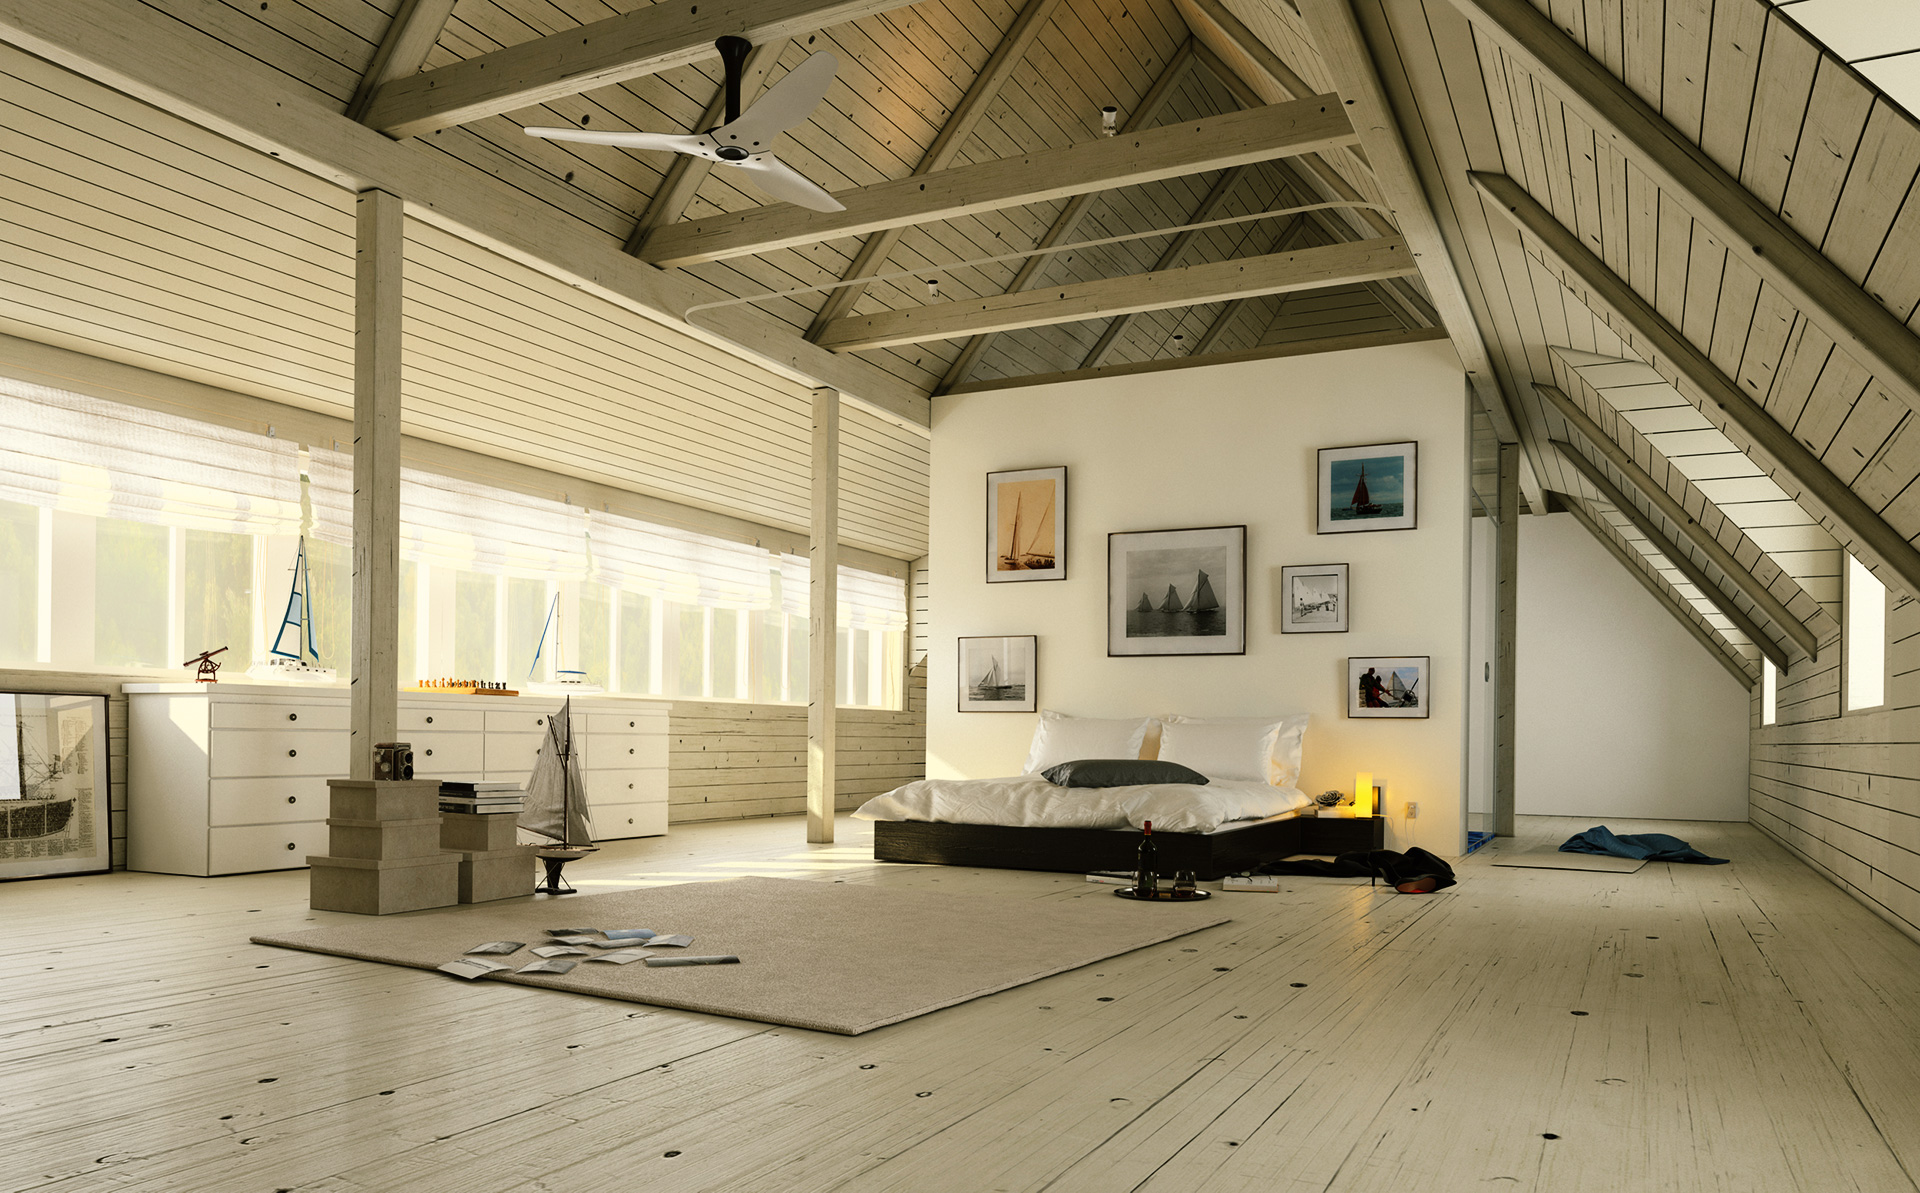 Villa Bedroom visualisation from renderwerke